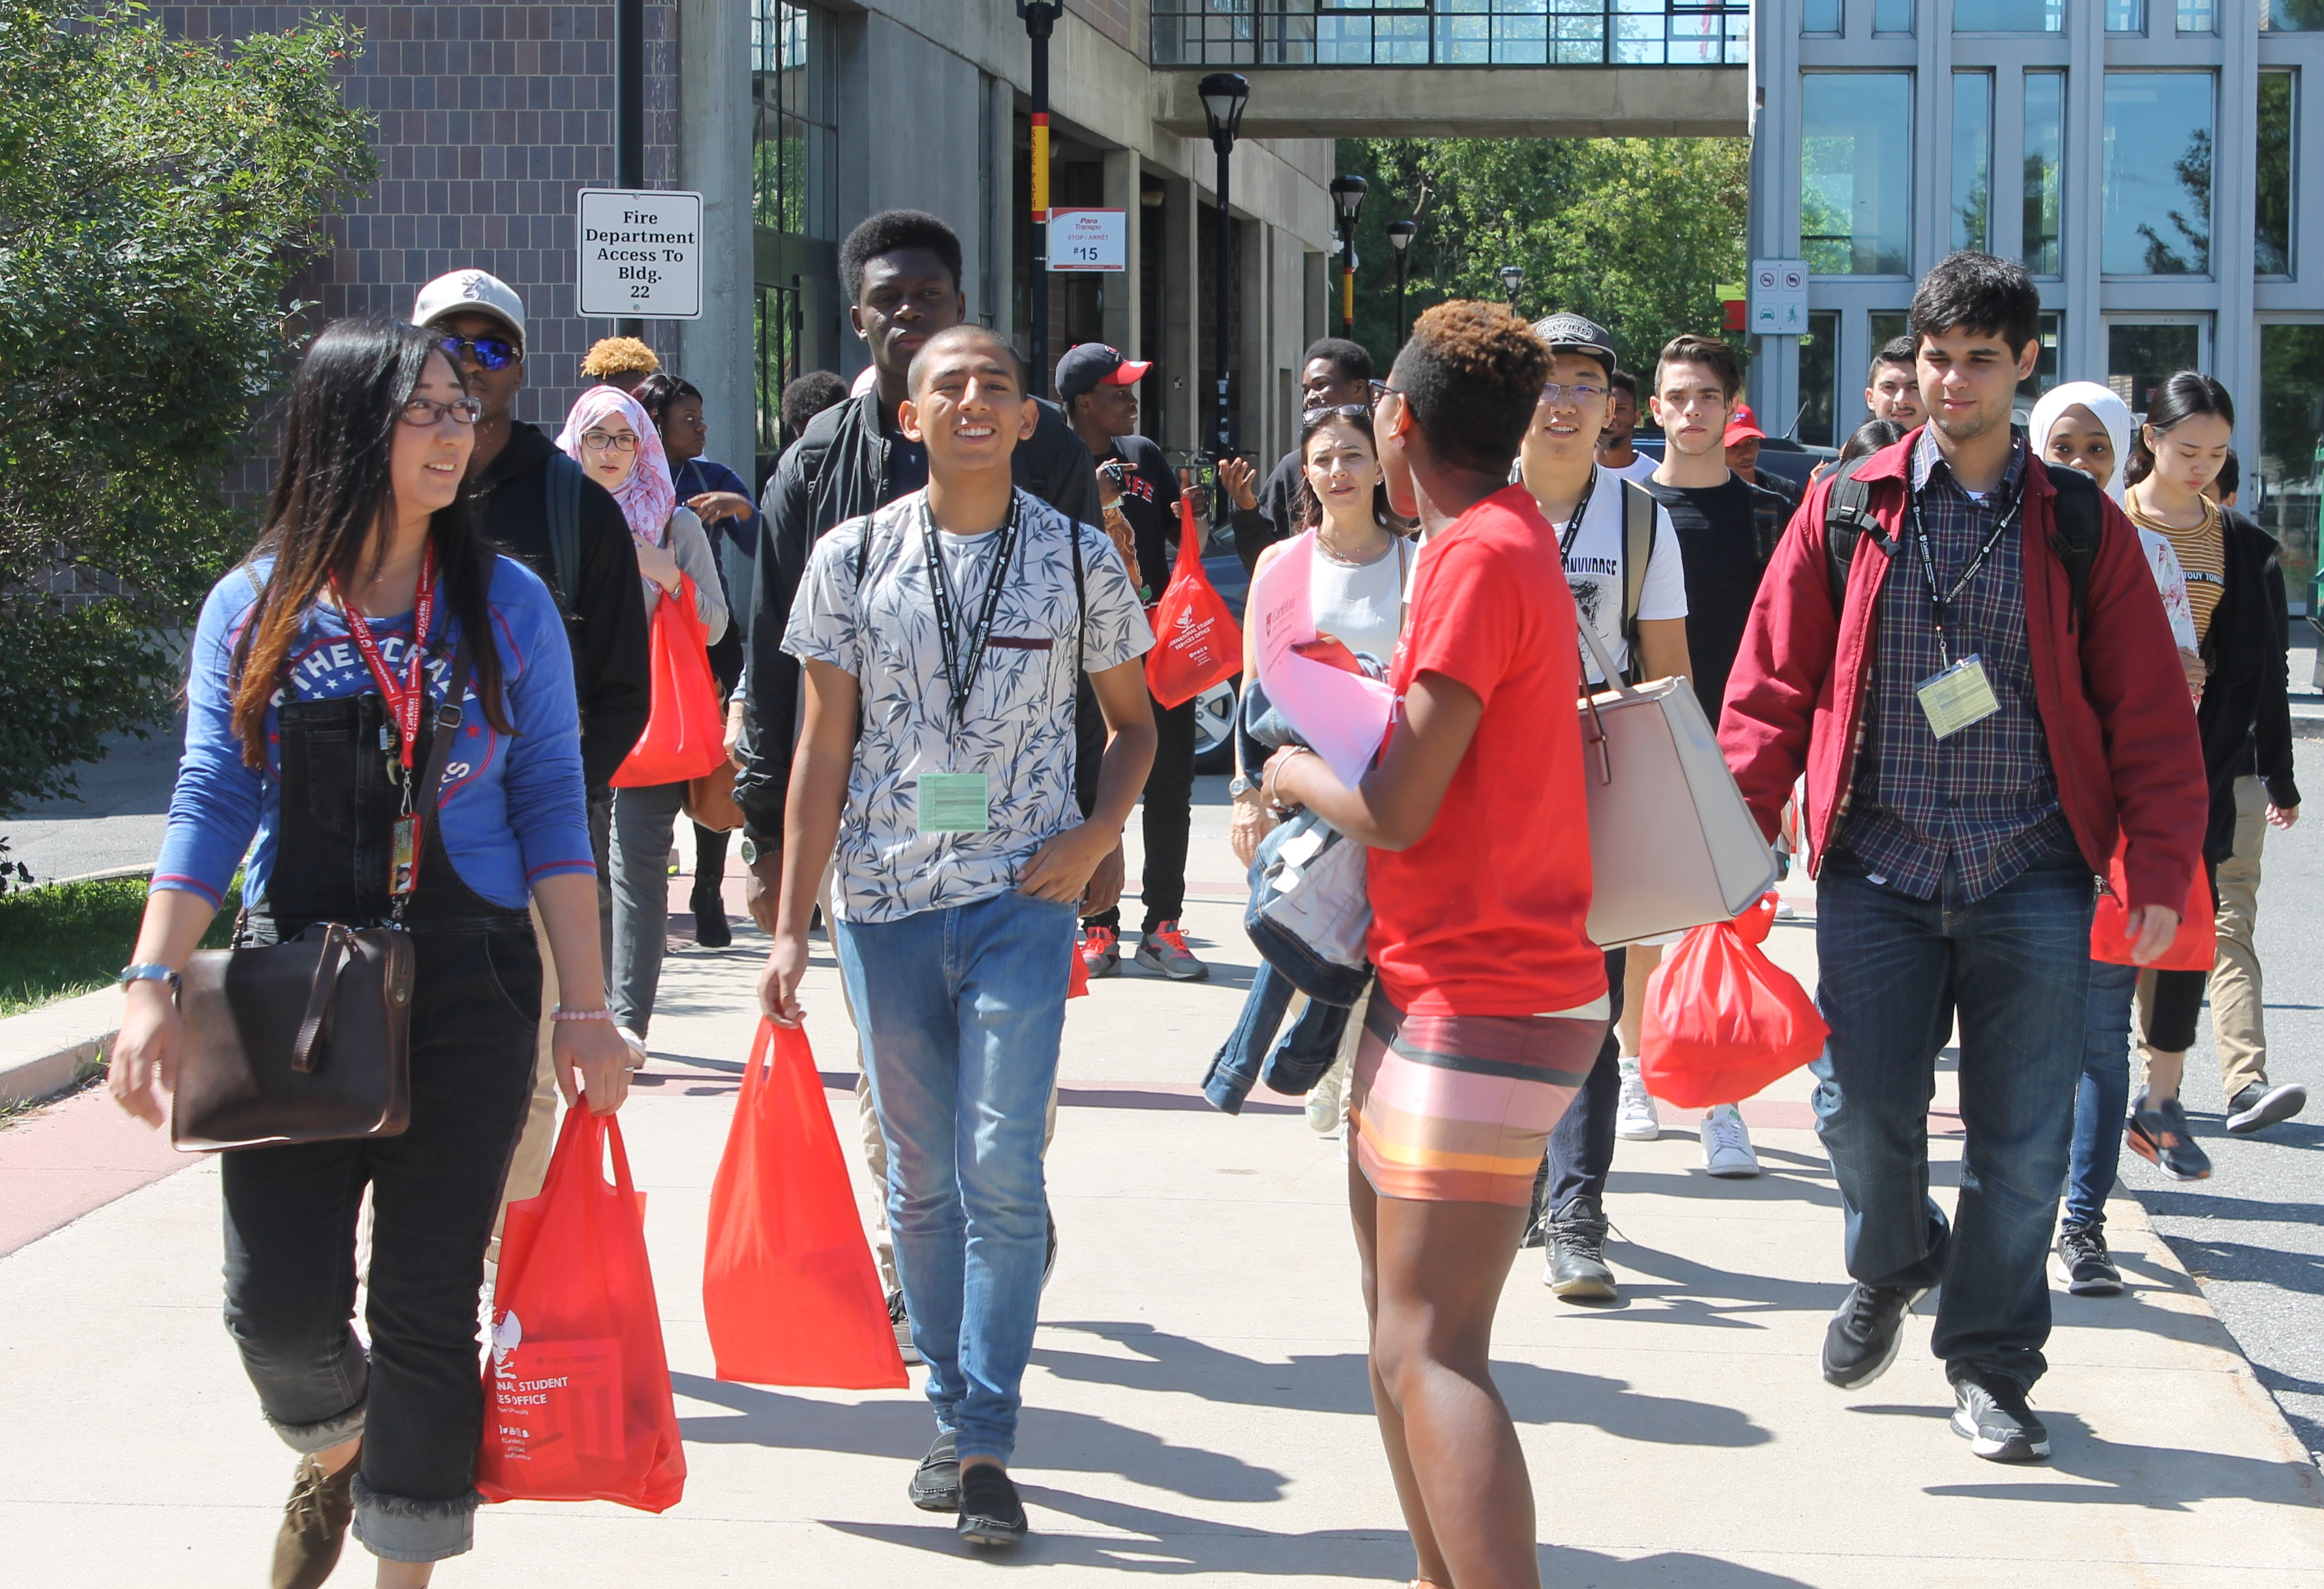 Several Carleton students walking around campus carrying red Orientation bags